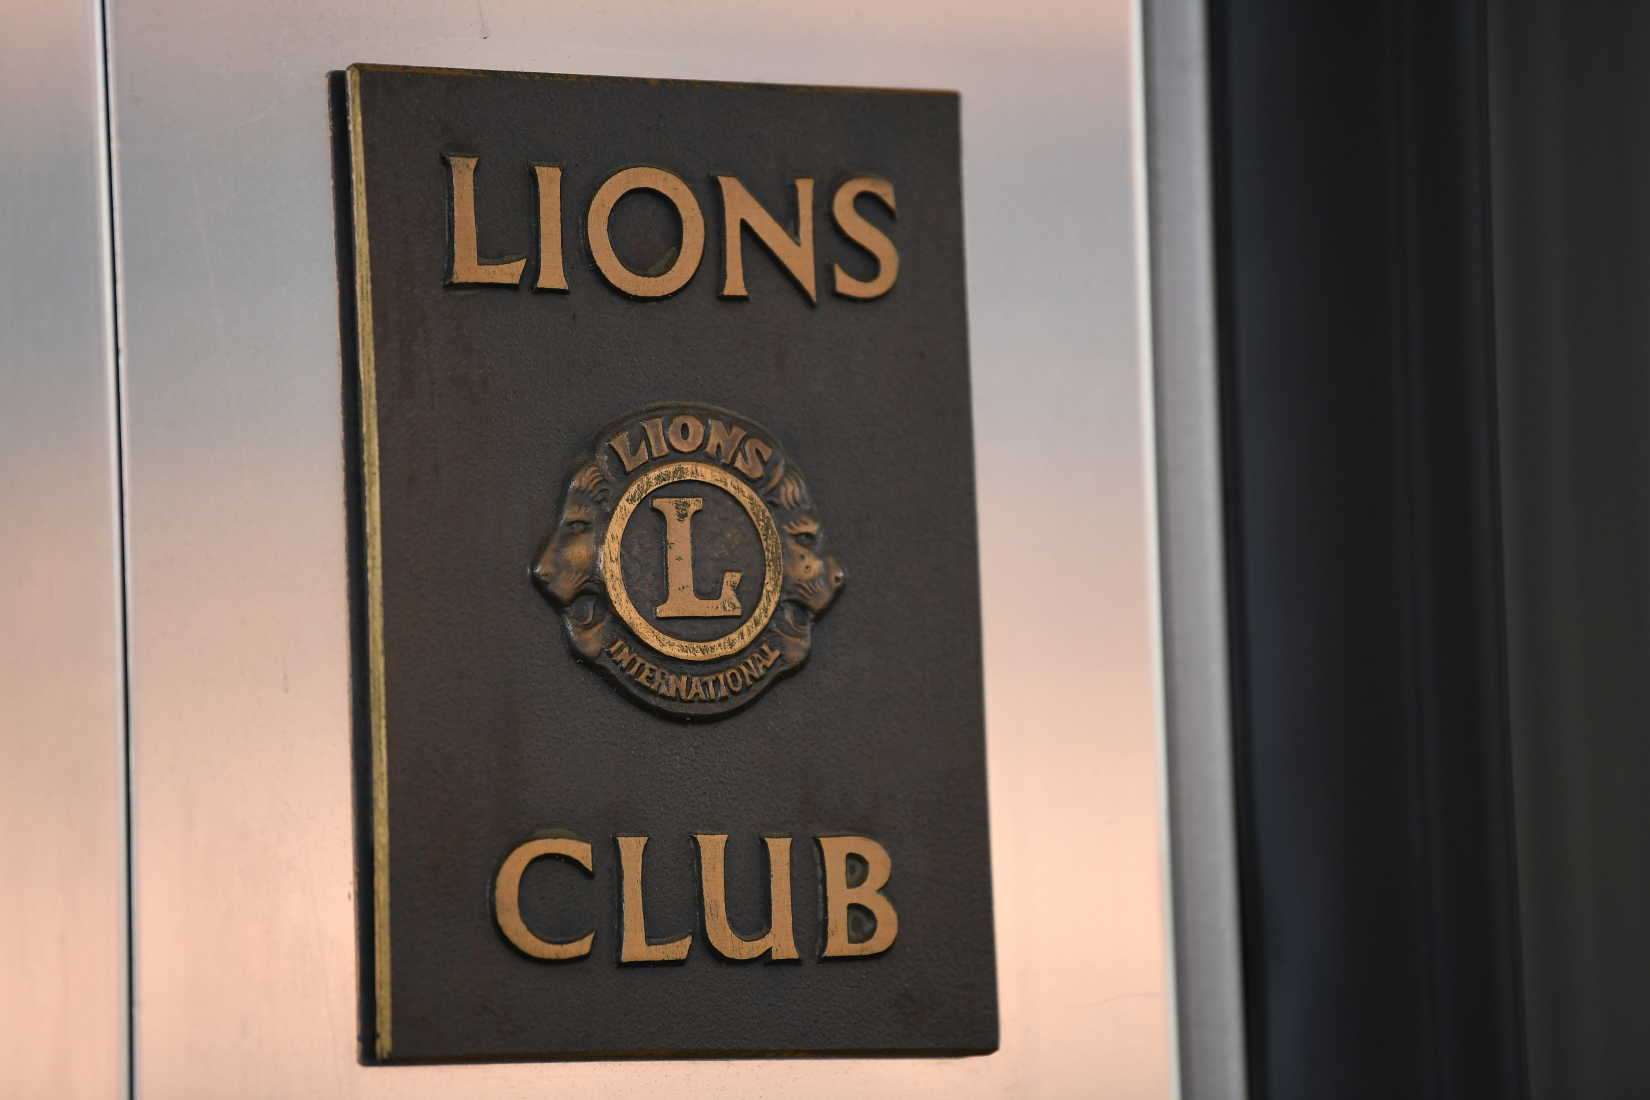 Wisconsin Lions Club Uses Guns to Raise Hundreds of Thousands of Dollars for Charity